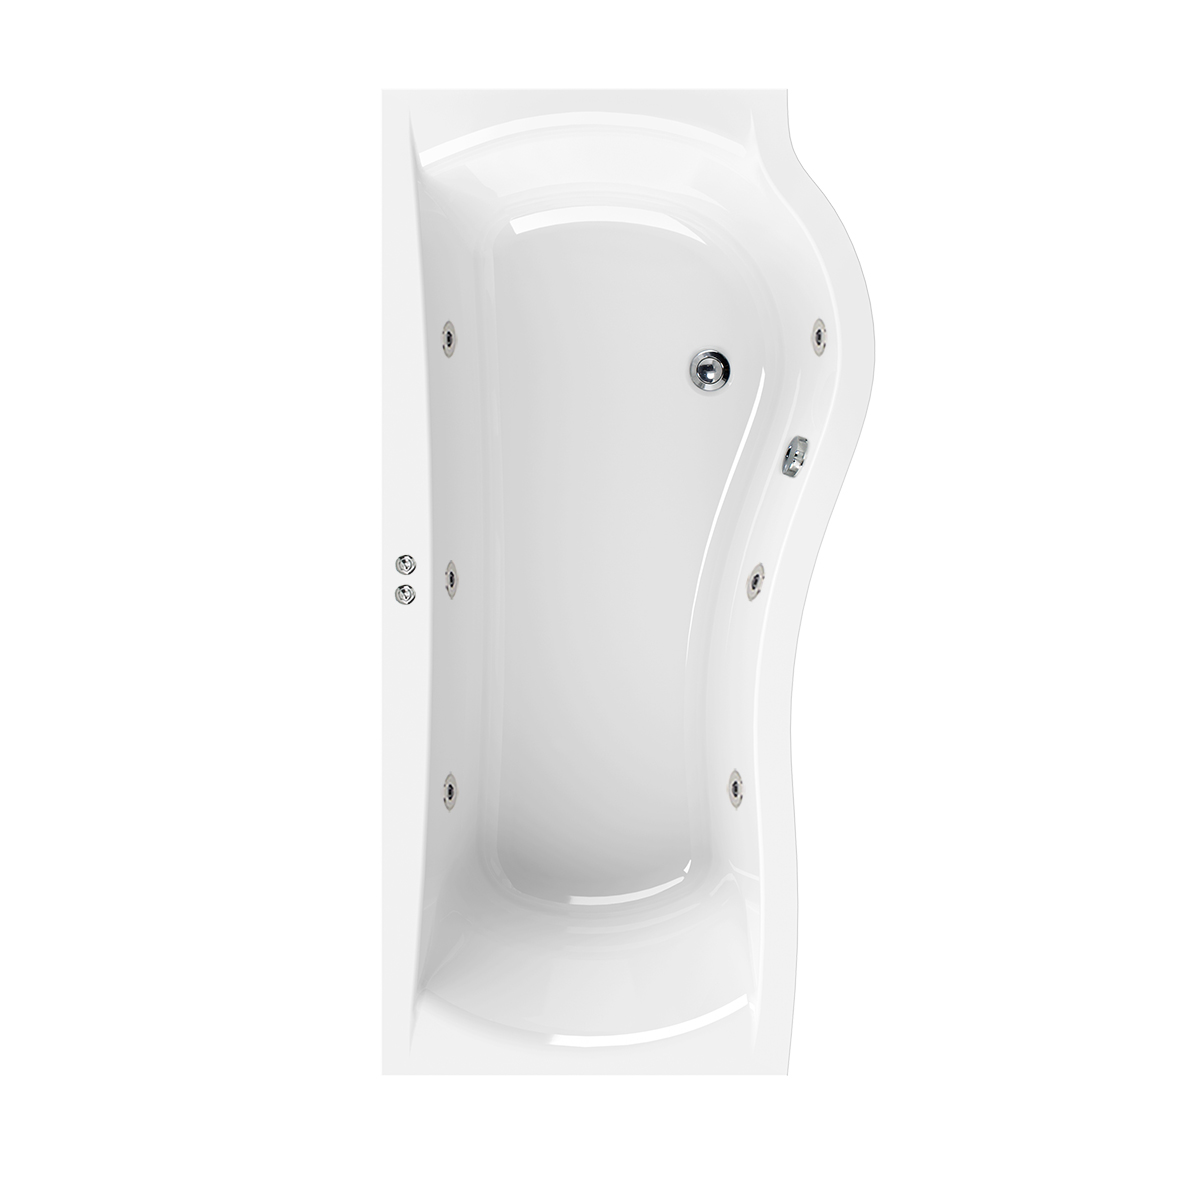 Aquaestil Da Vinci RH 6 Jet Whirlpool Shower Bath